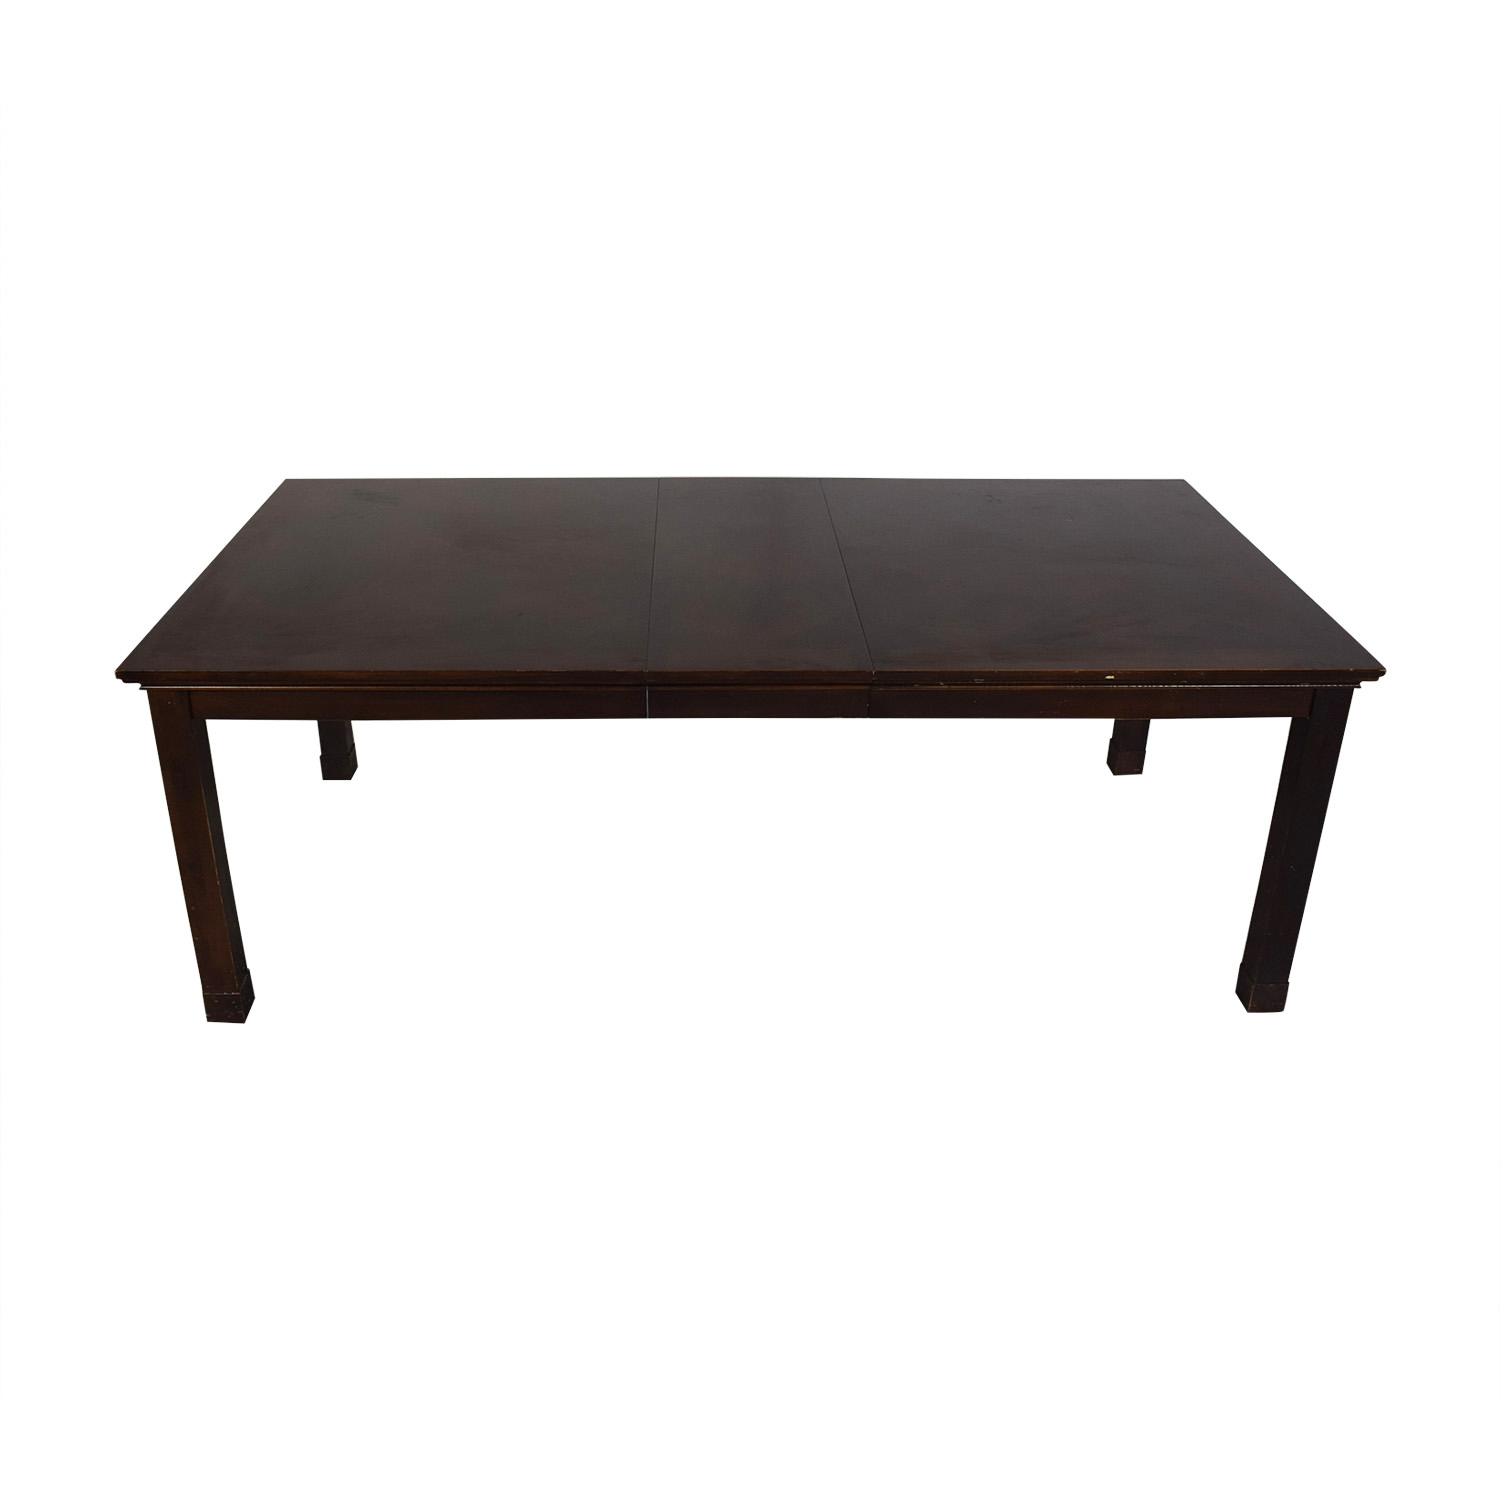 Macy's Extendable Dining Table / Dinner Tables